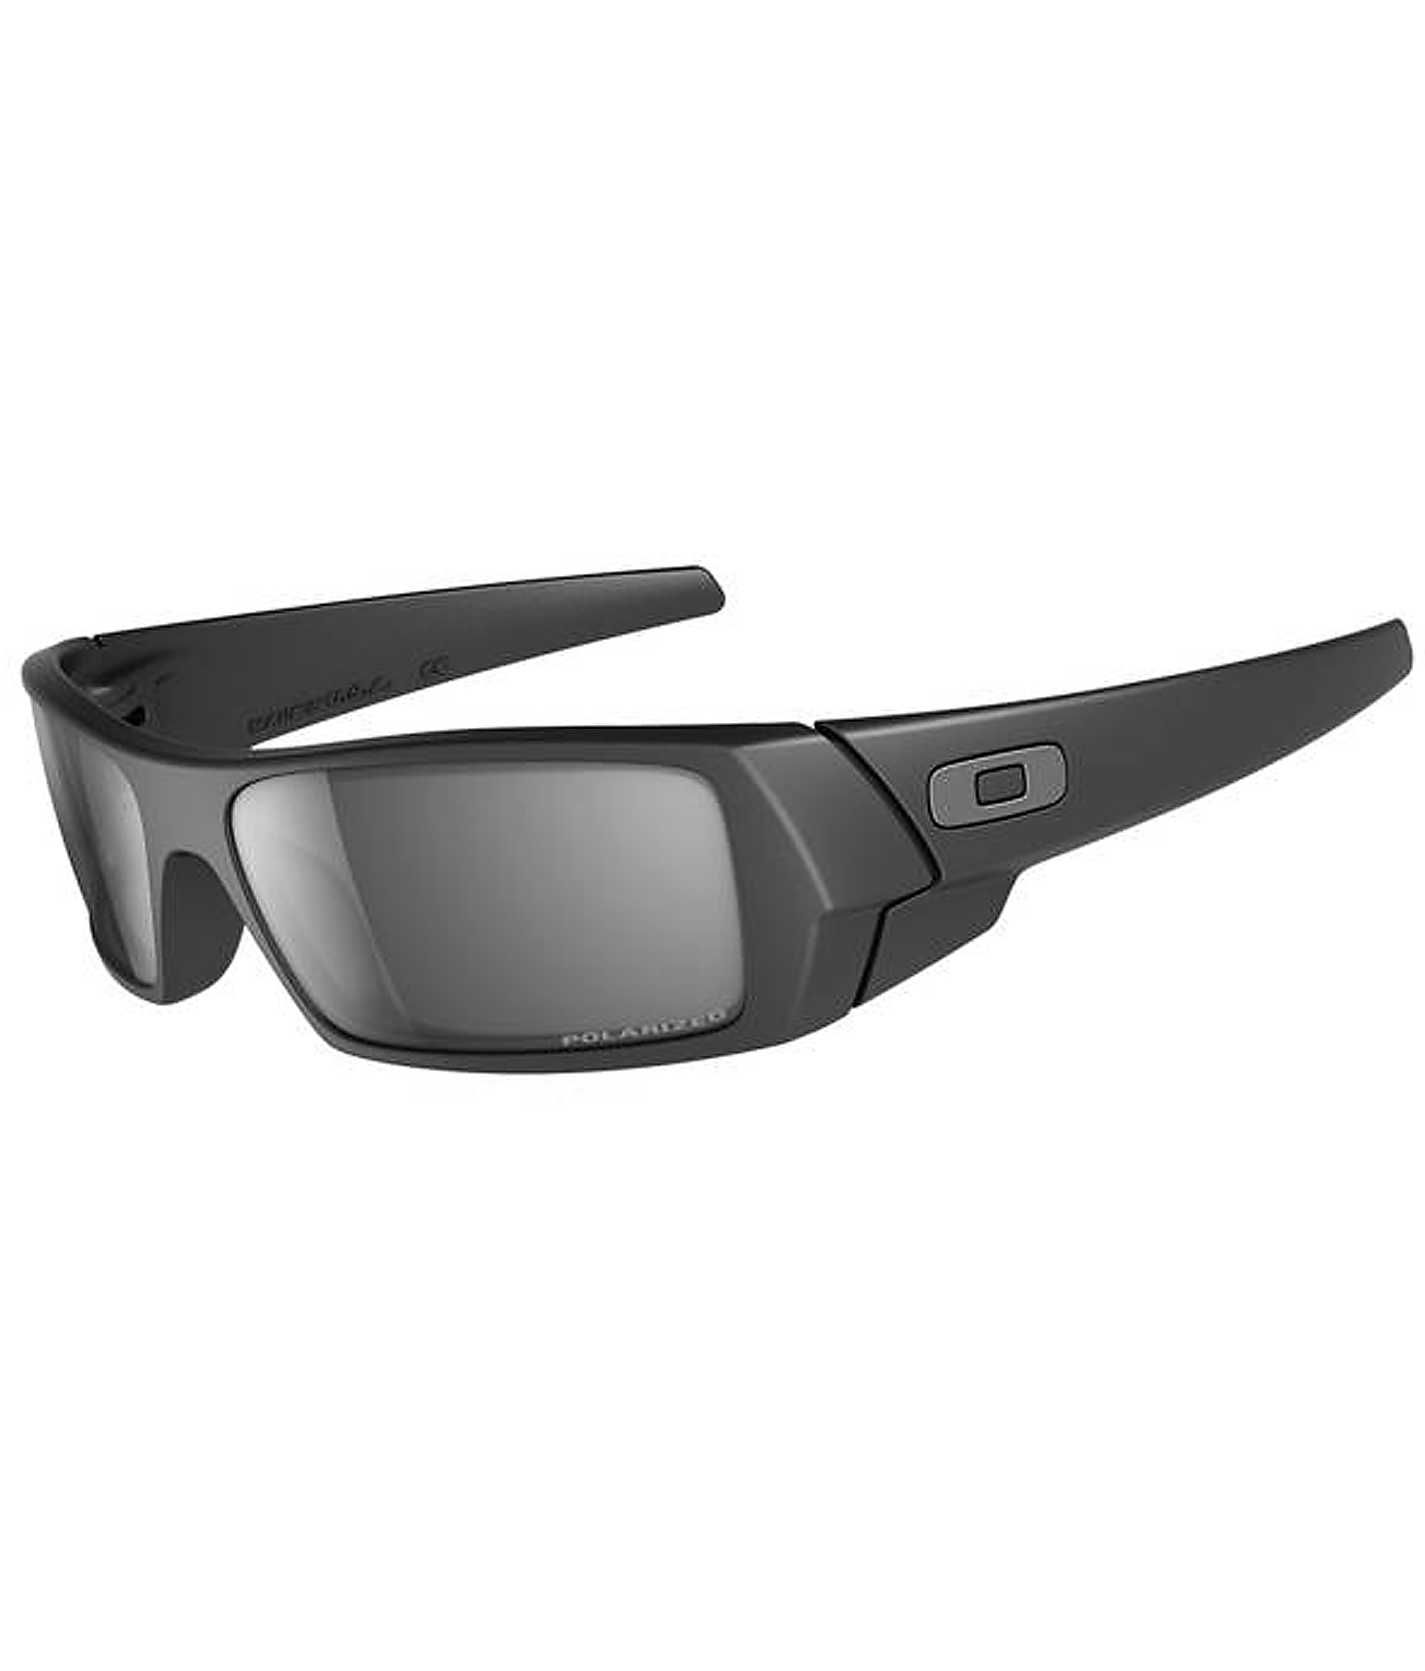 Oakley Gascan Sunglasses - Men's Accessories